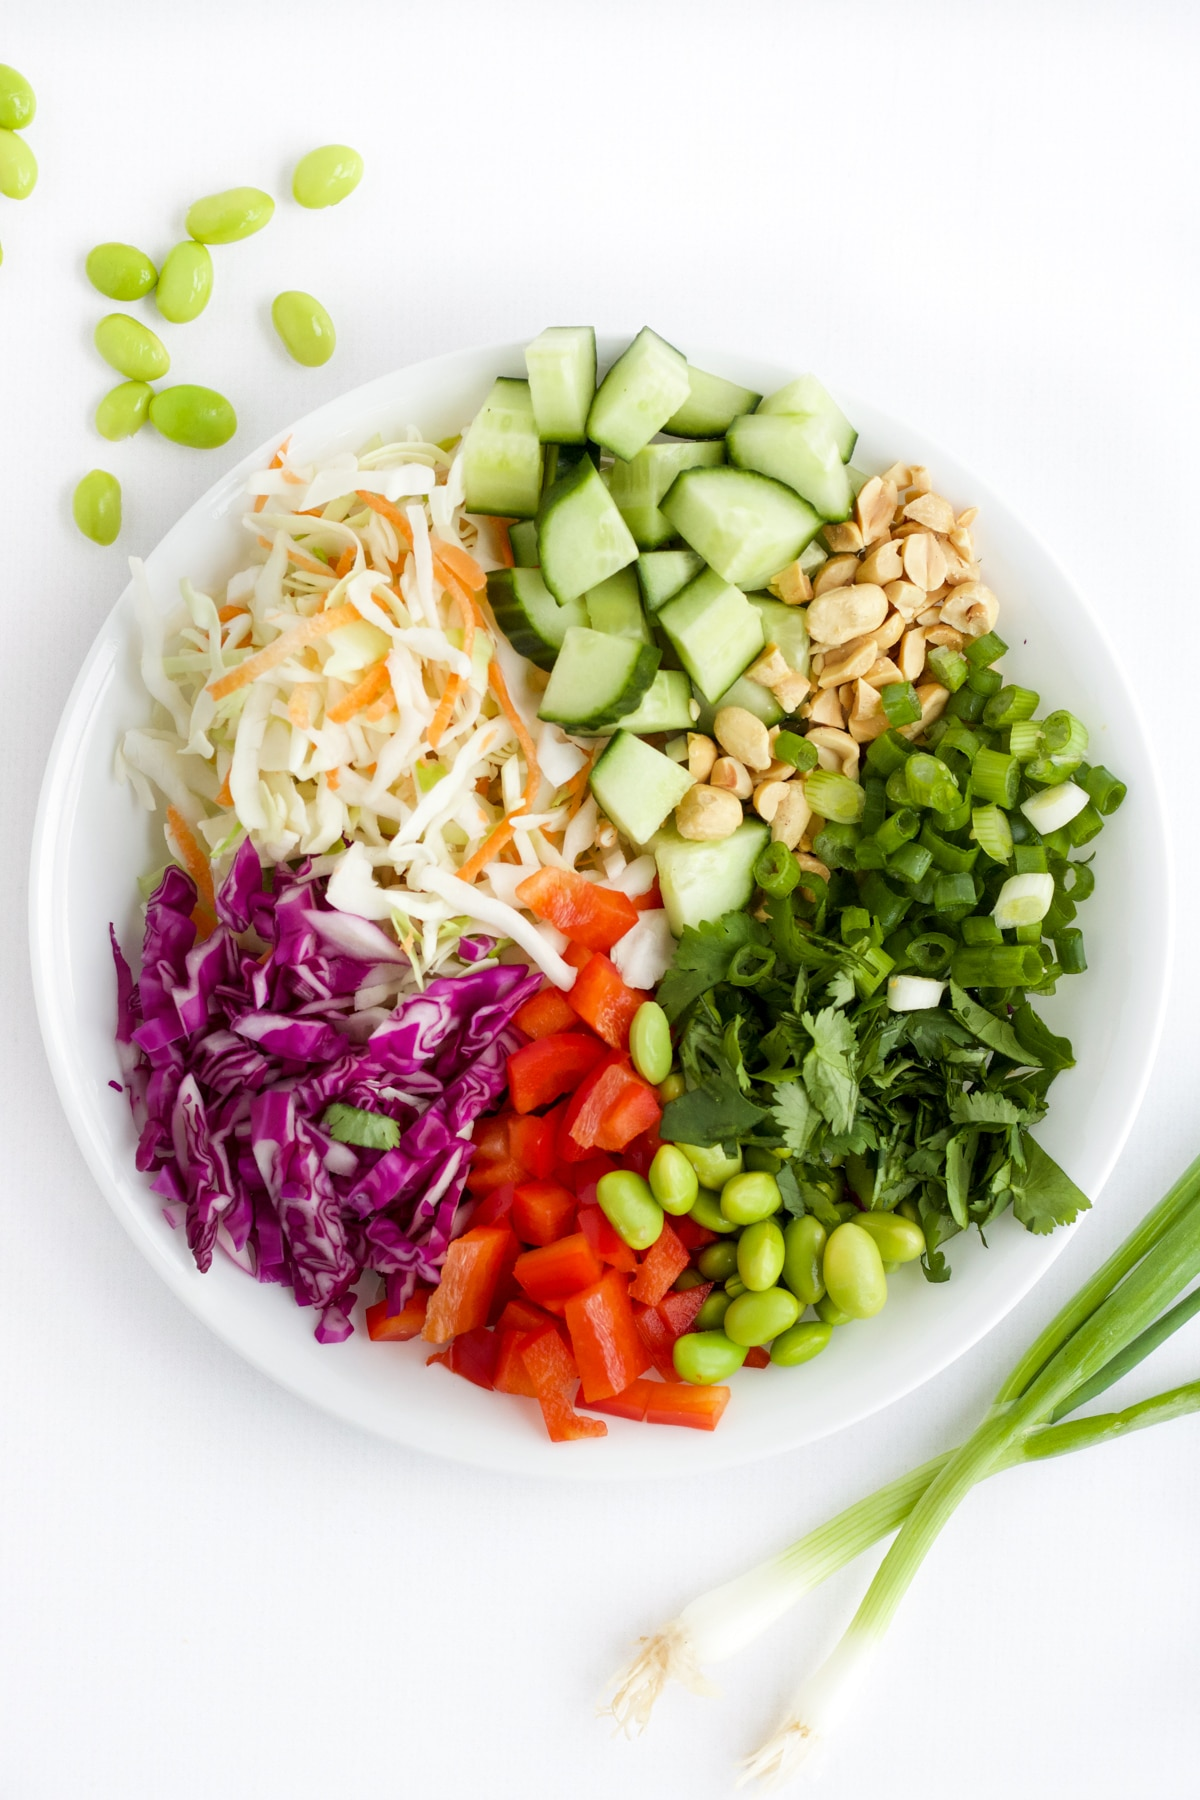 Overhead image of ingredients to make Thai salad in a white bowl.